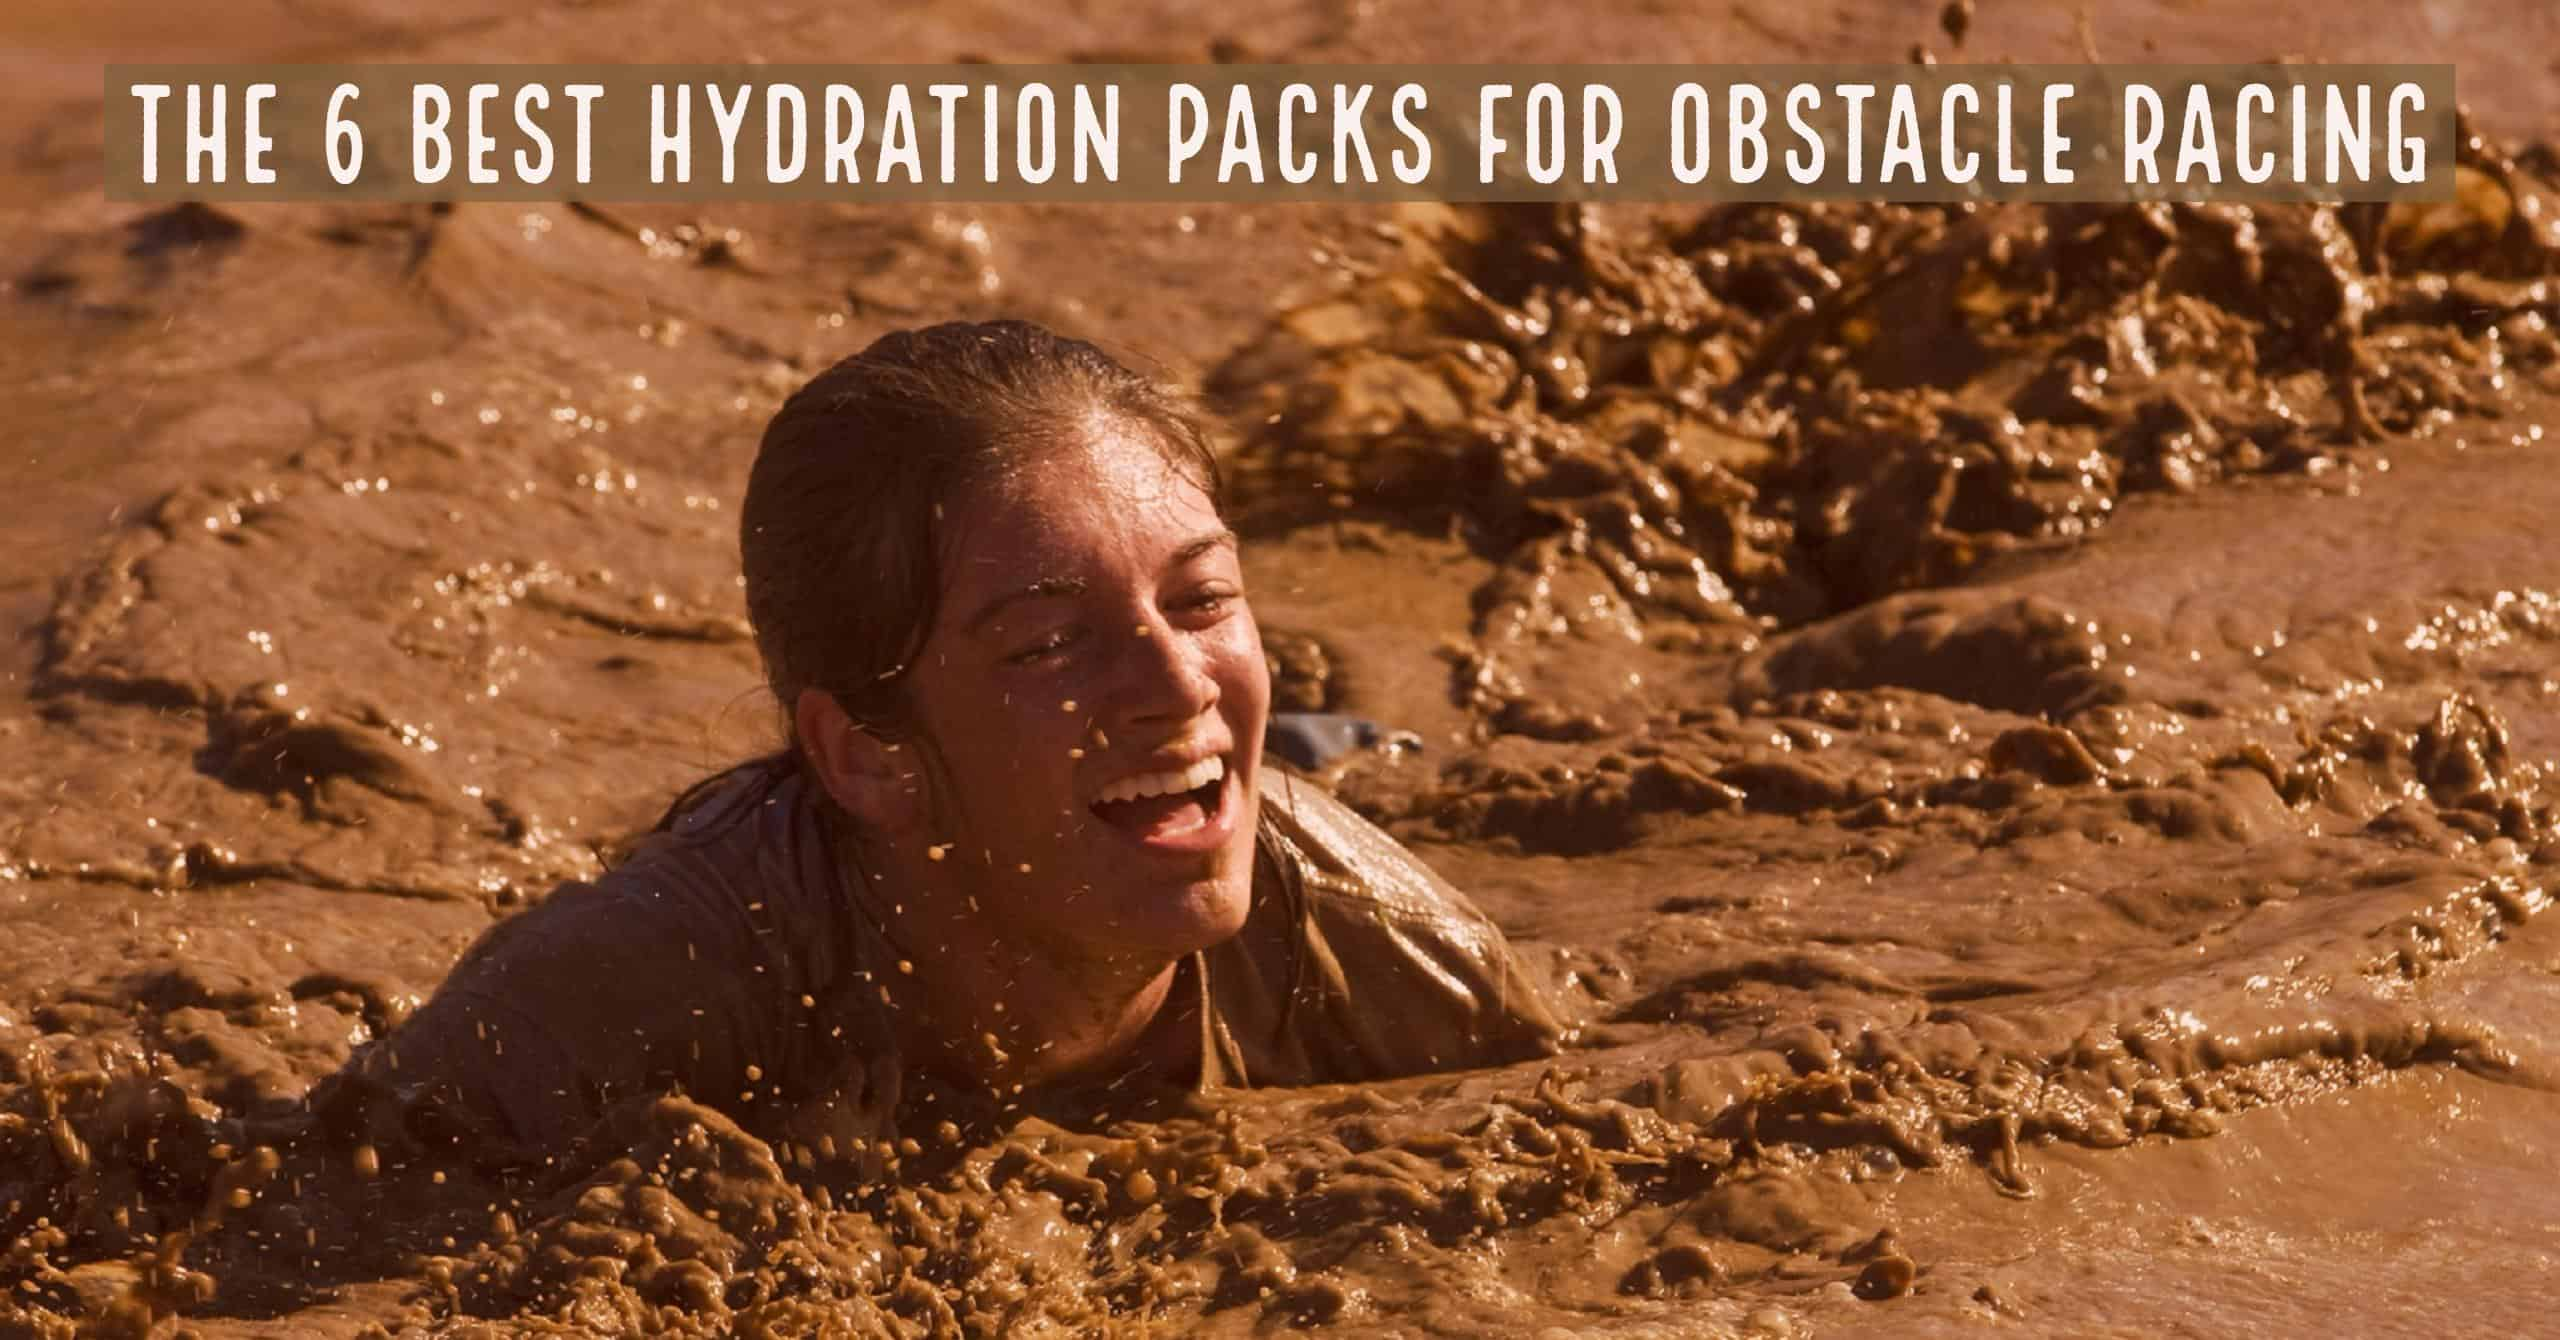 The 6 Best Hydration Packs for Obstacle Racing